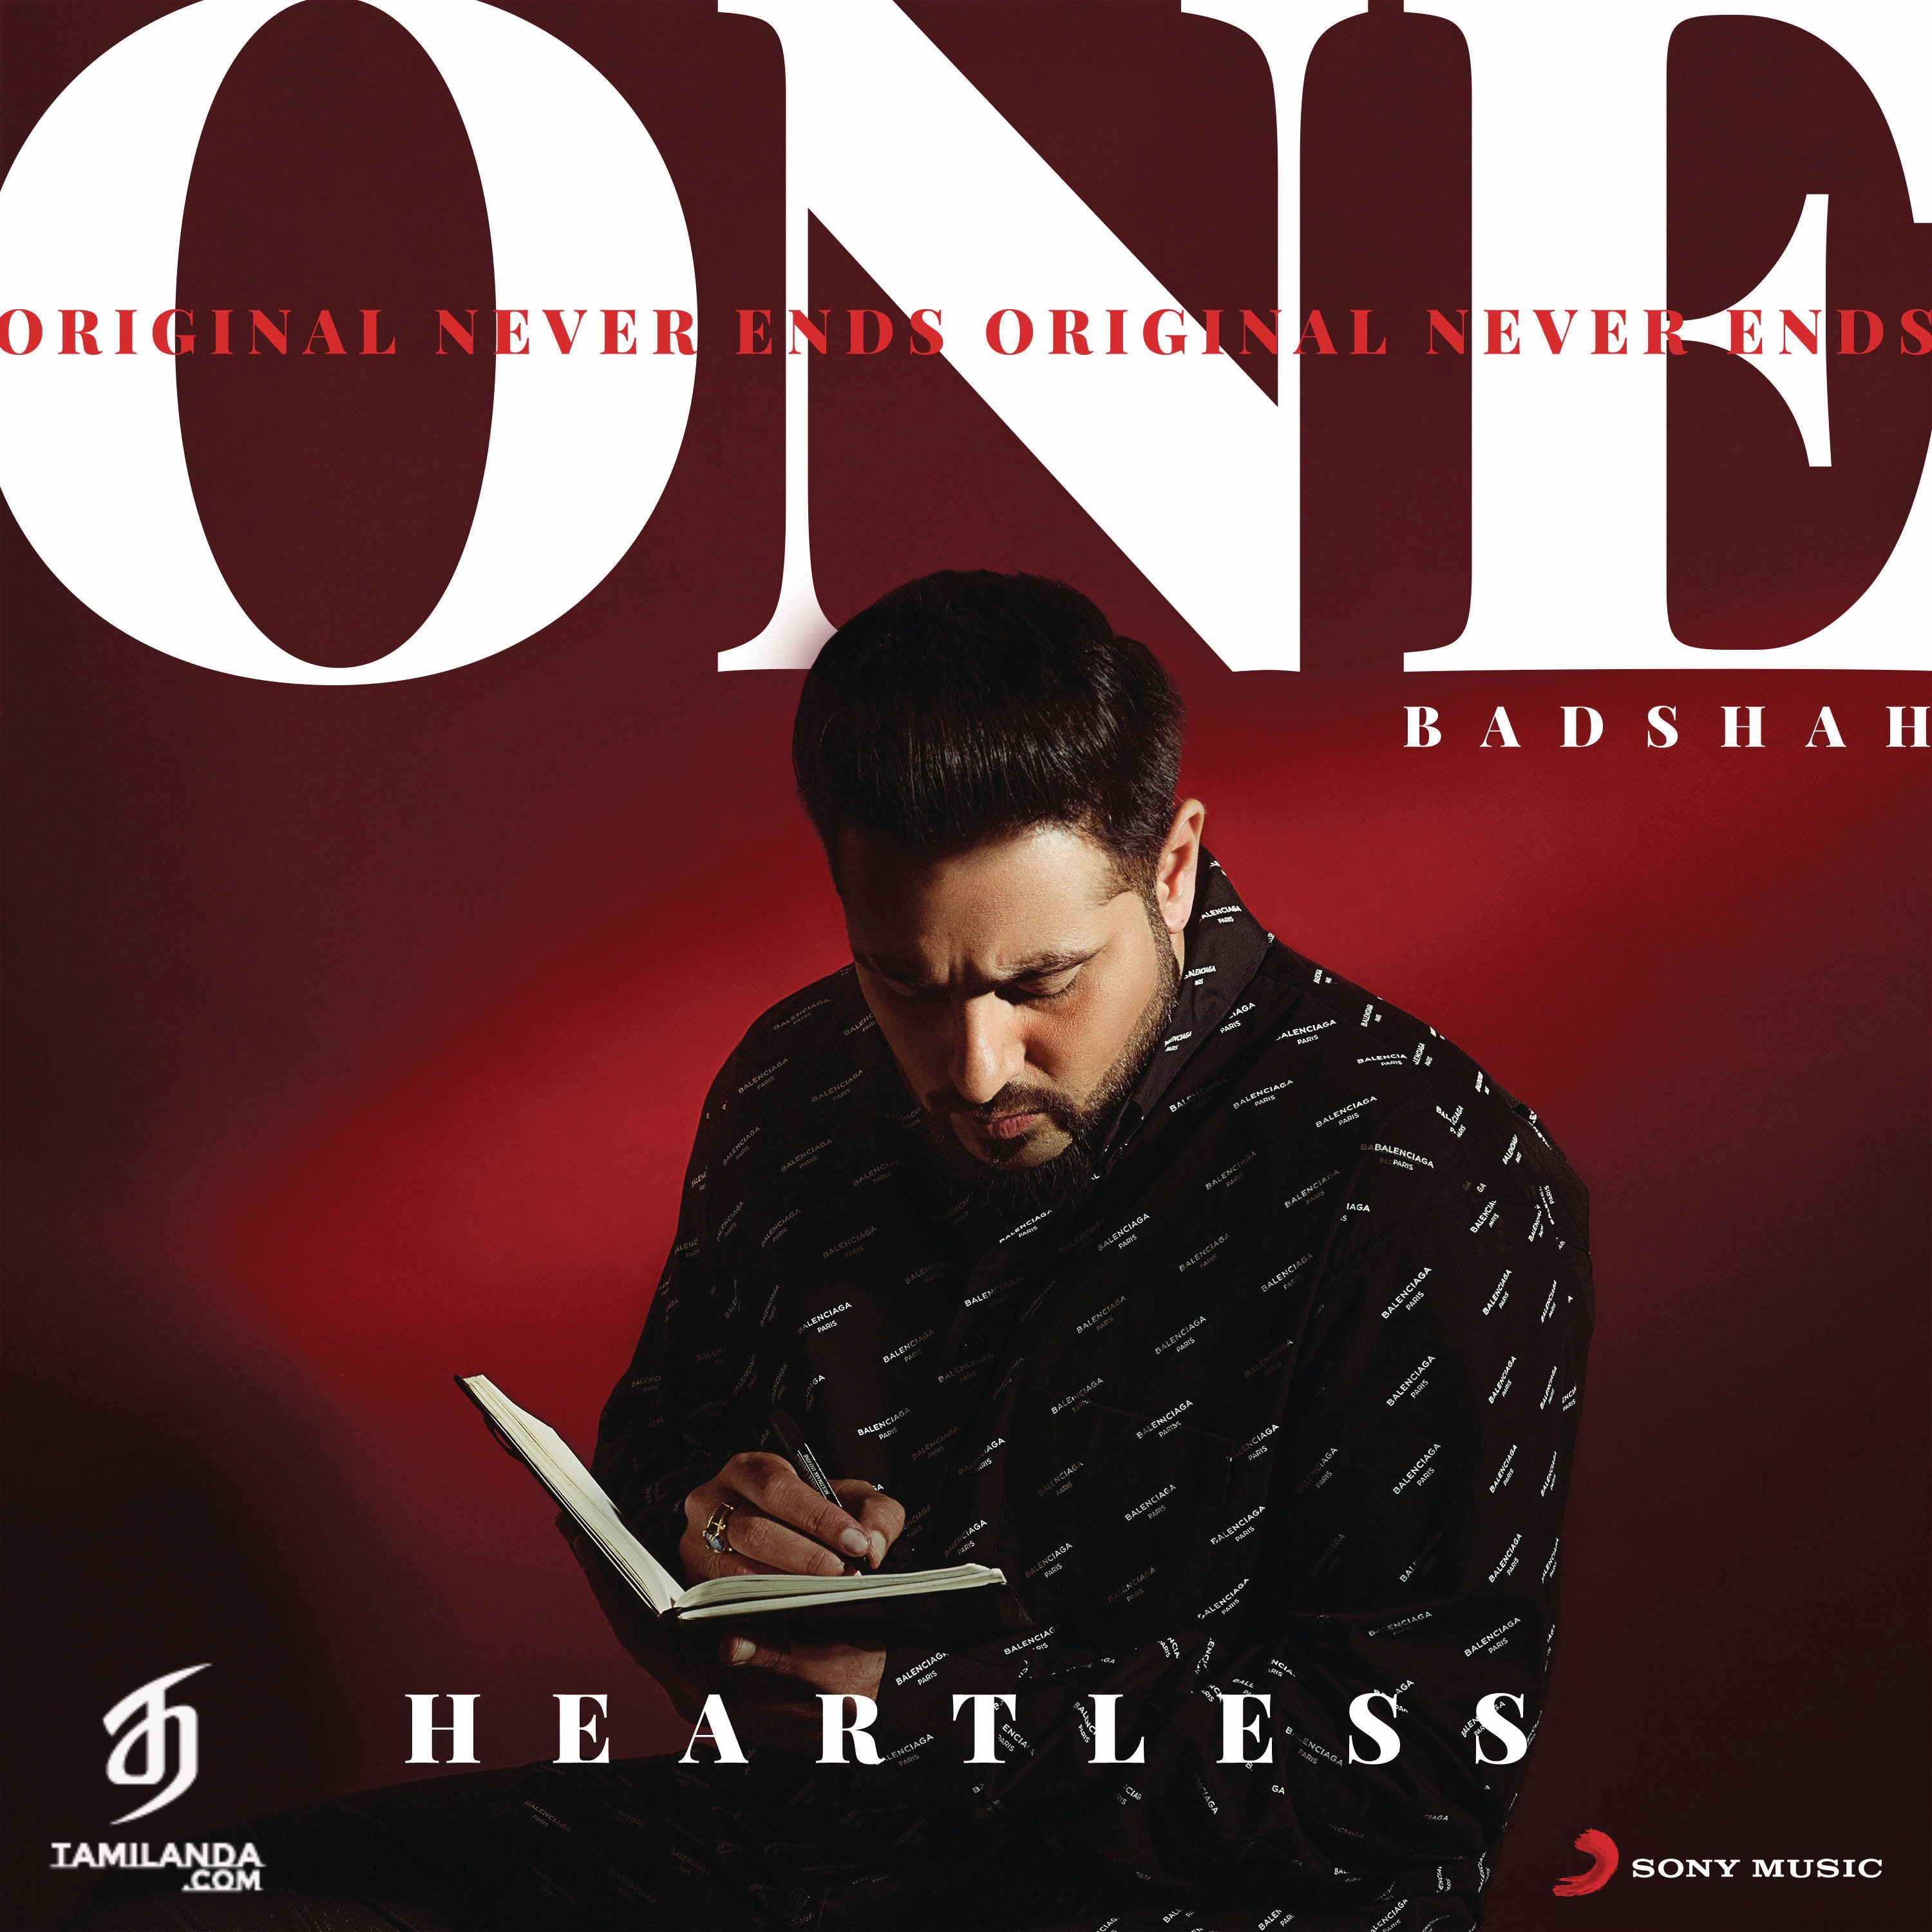 Heartless (feat. Aastha Gill) – Single 24 BIT 96 KHZ FLAC Song